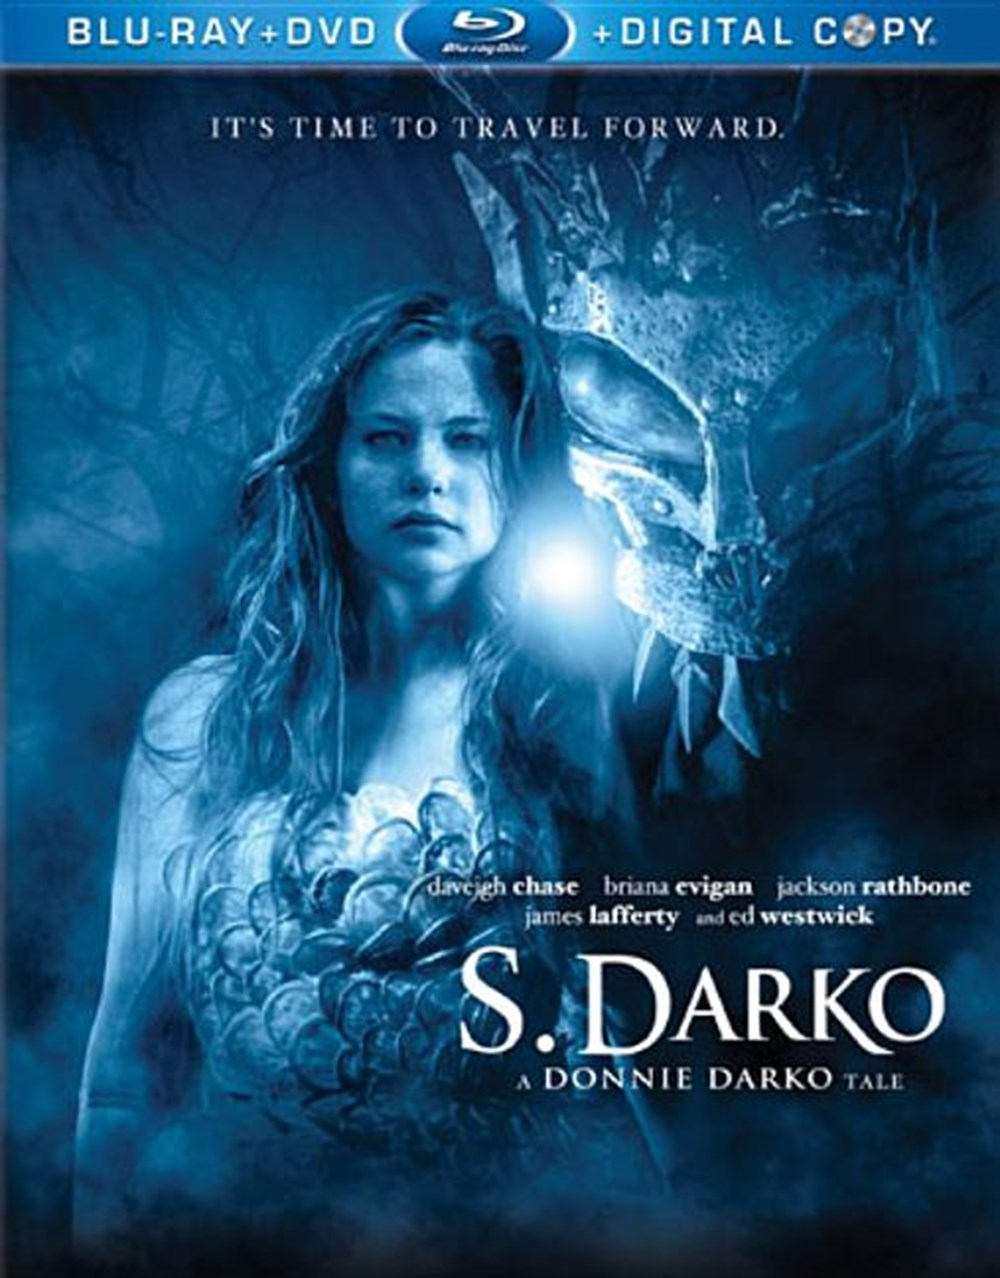 S. Darko A Donnie Darko Tale